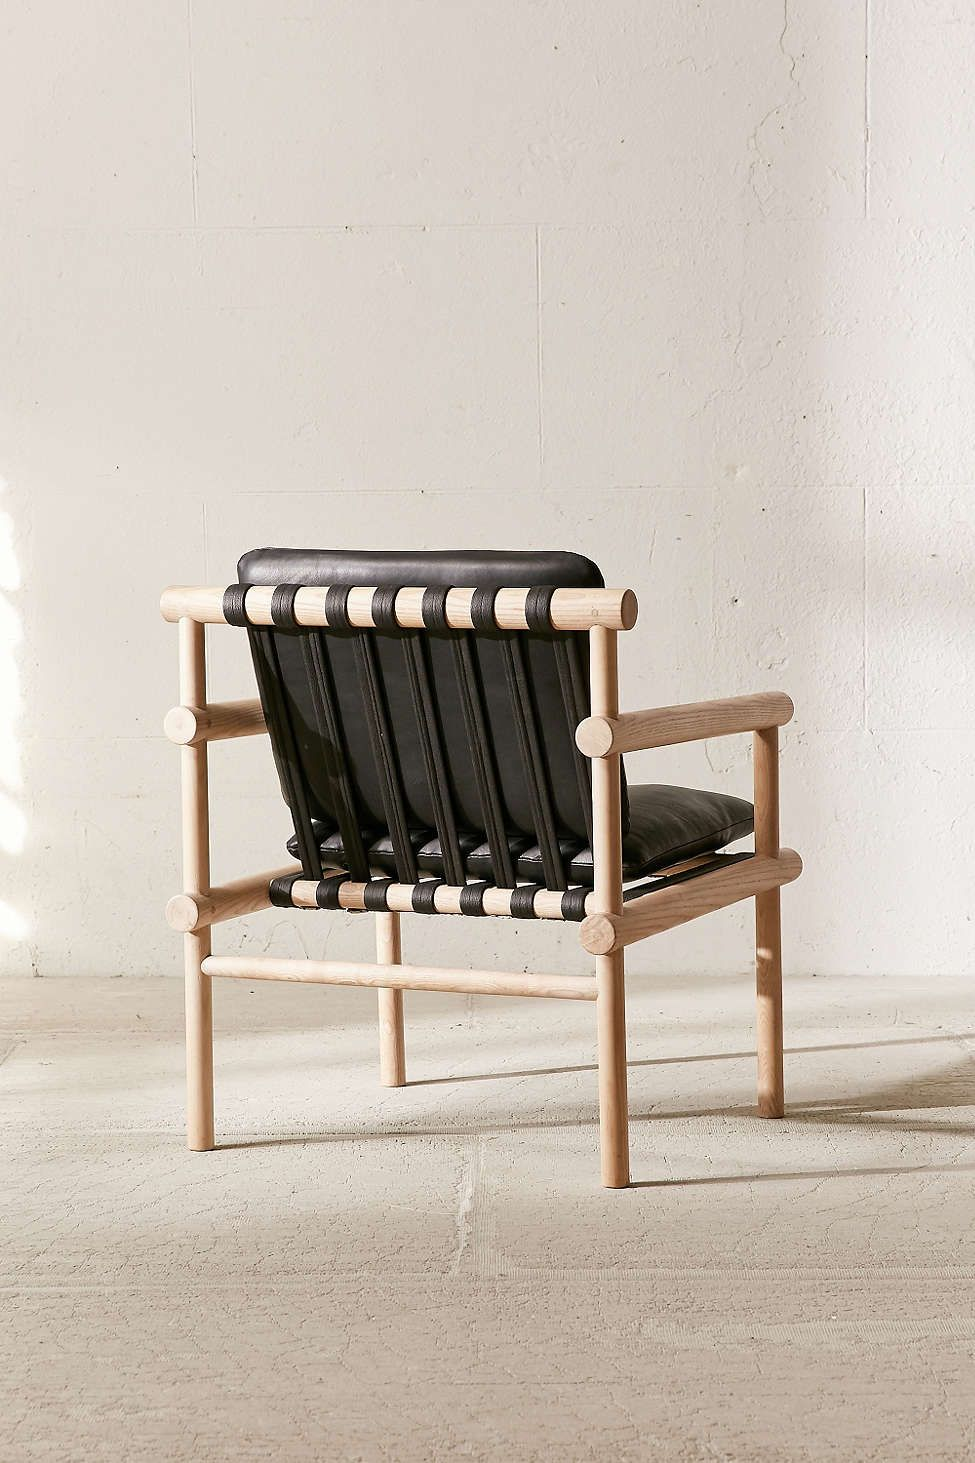 Urban Arm Chair #18 - Leather Dowel Arm Chair